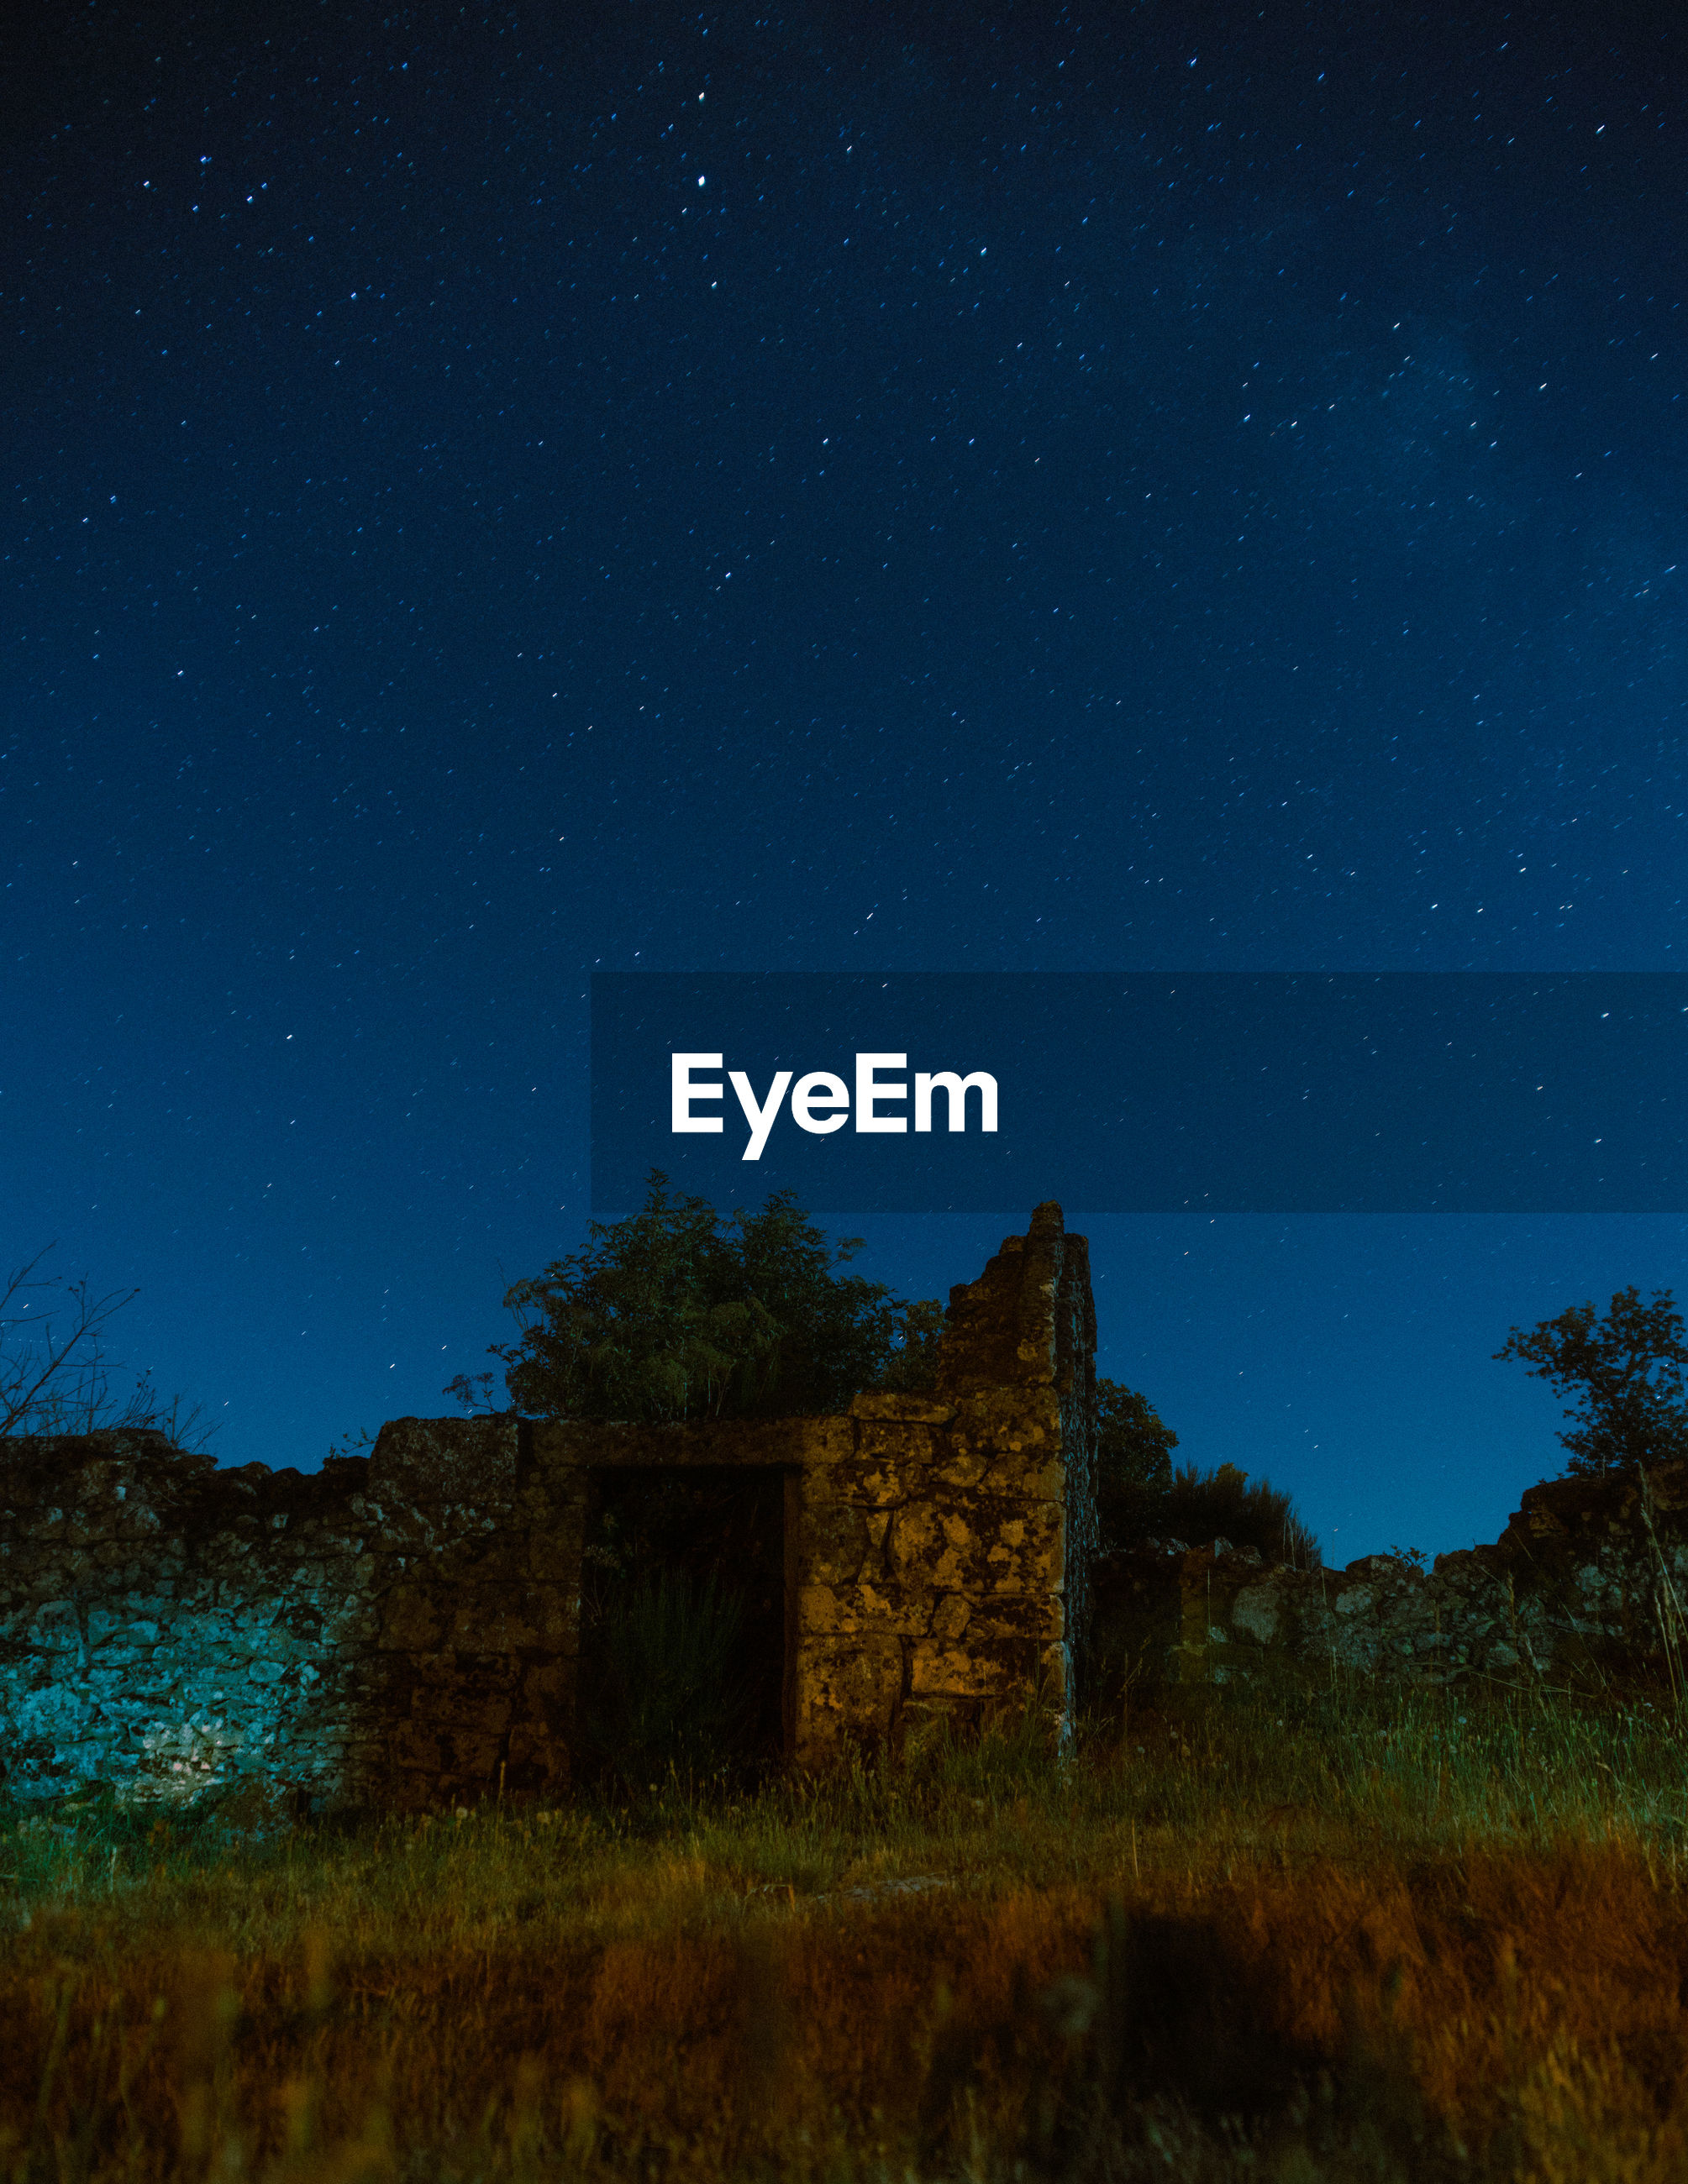 ABANDONED BUILDING AGAINST CLEAR SKY AT NIGHT DURING RAINY SEASON